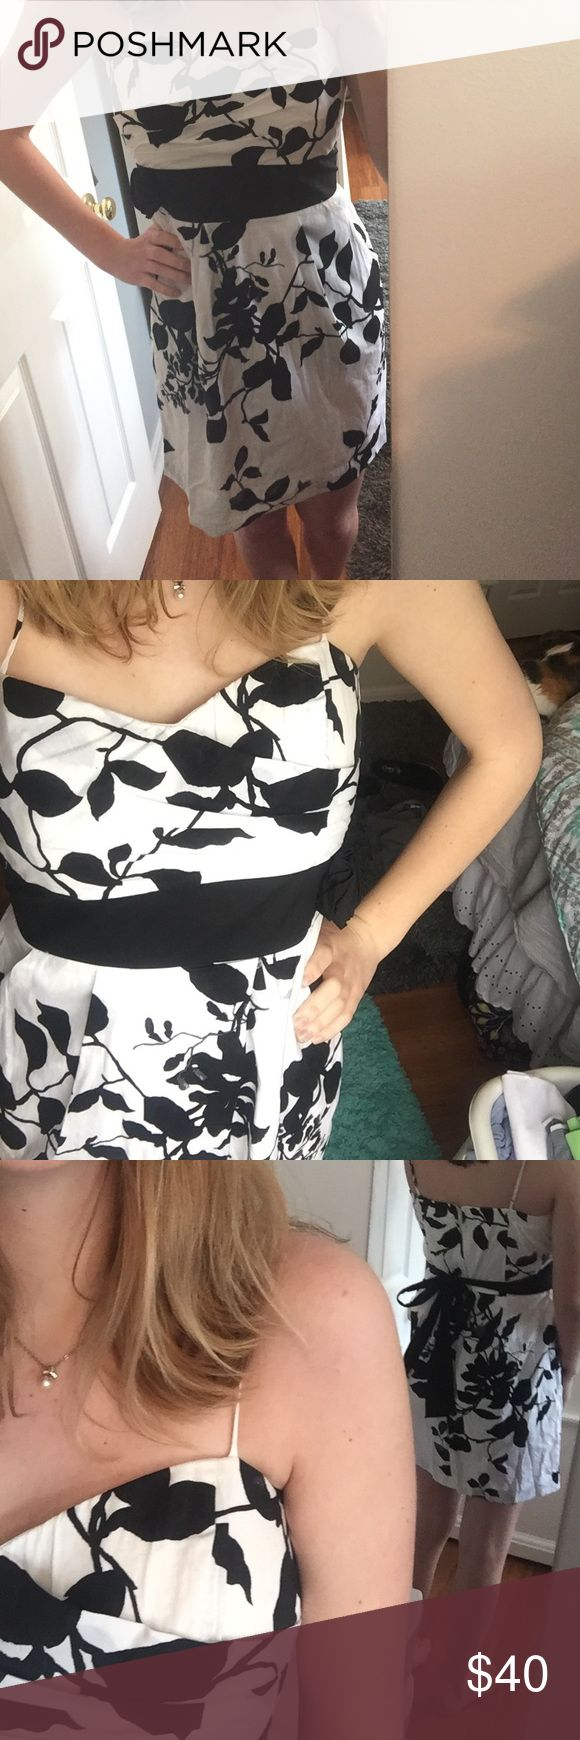 Black and white special occasion dress Black and white dress with adjustable straps and an attached black belt with a flower on it. It has pockets too! Perfect for those special occasions when you want to be comfortable and cute. delia*s Dresses